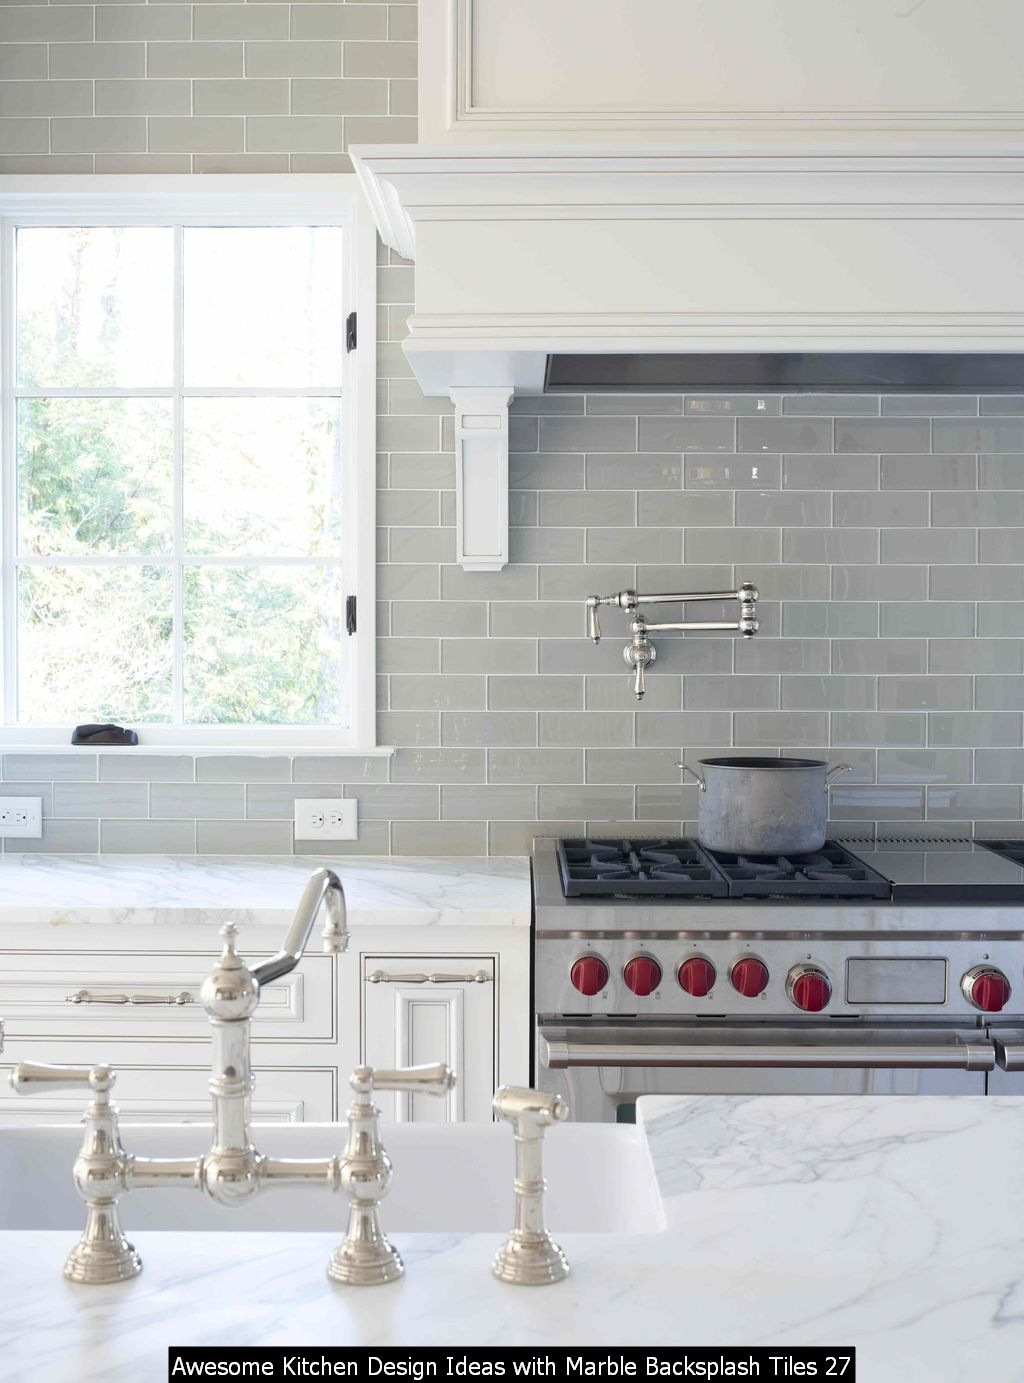 Awesome Kitchen Design Ideas With Marble Backsplash Tiles 27